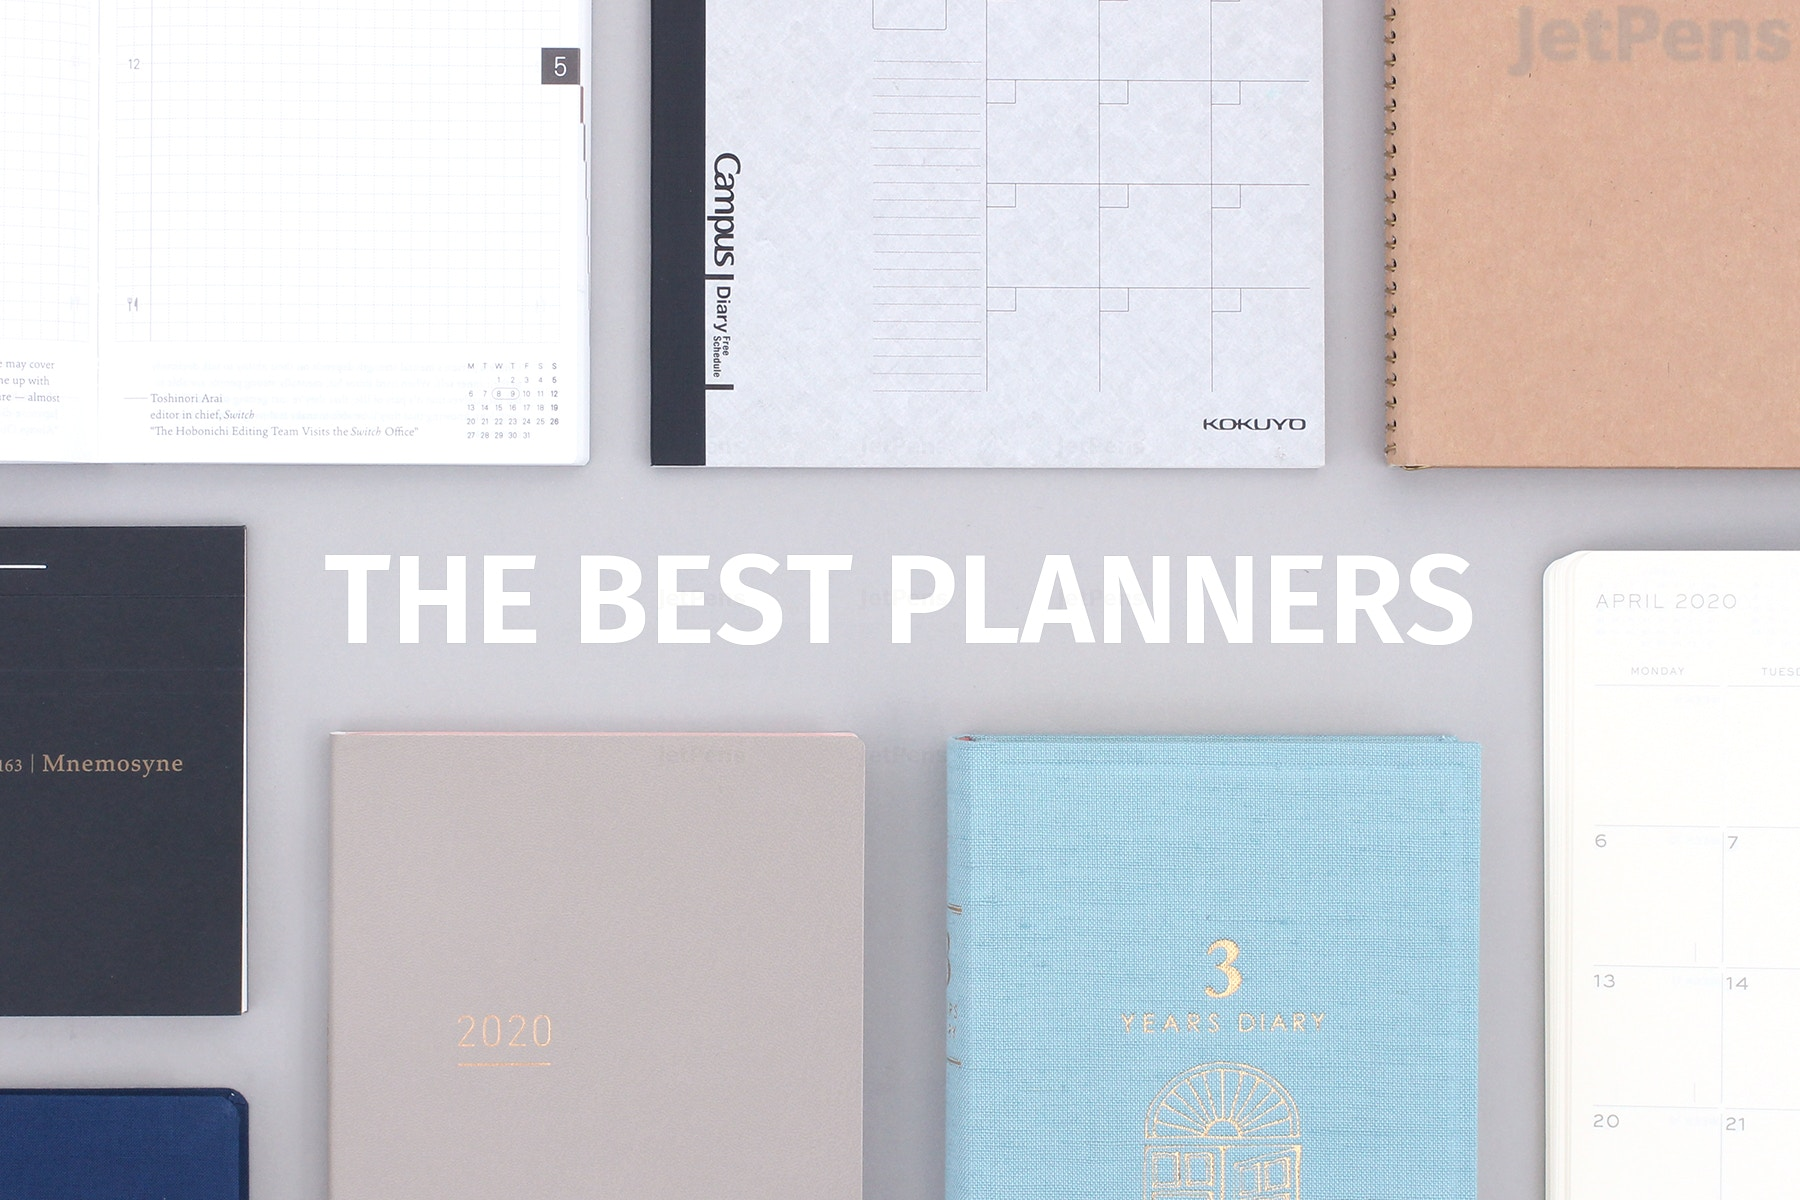 Best Planners And Organizers 2020.The Best Planners For 2020 Jetpens